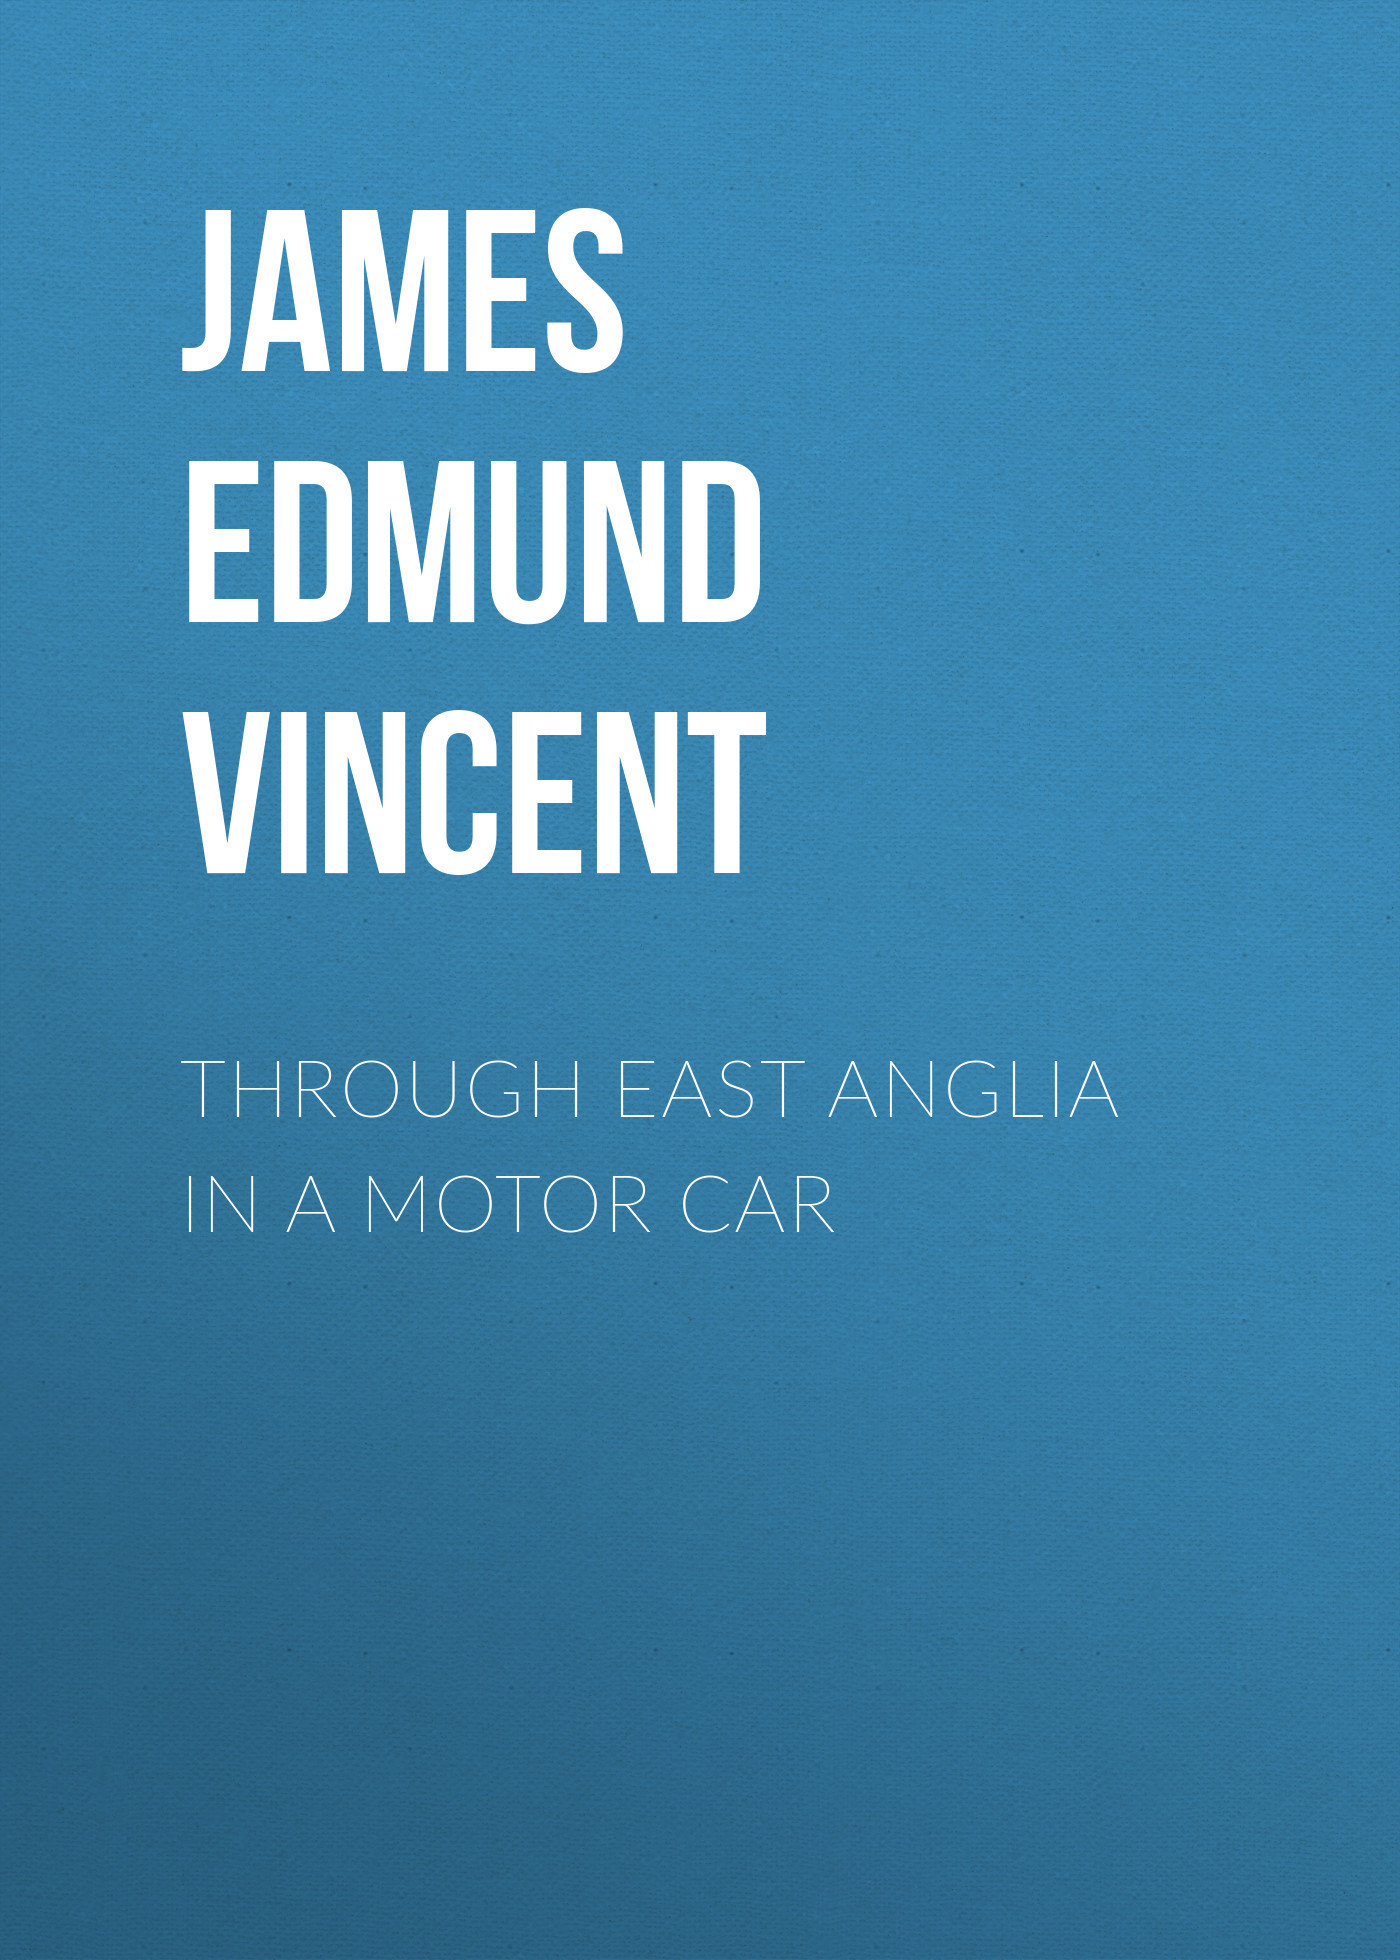 James Edmund Vincent Through East Anglia in a Motor Car diy toy car j473b model 7575 n20 gear motor intelligent model car diy assemble small car technology making free shipping russia